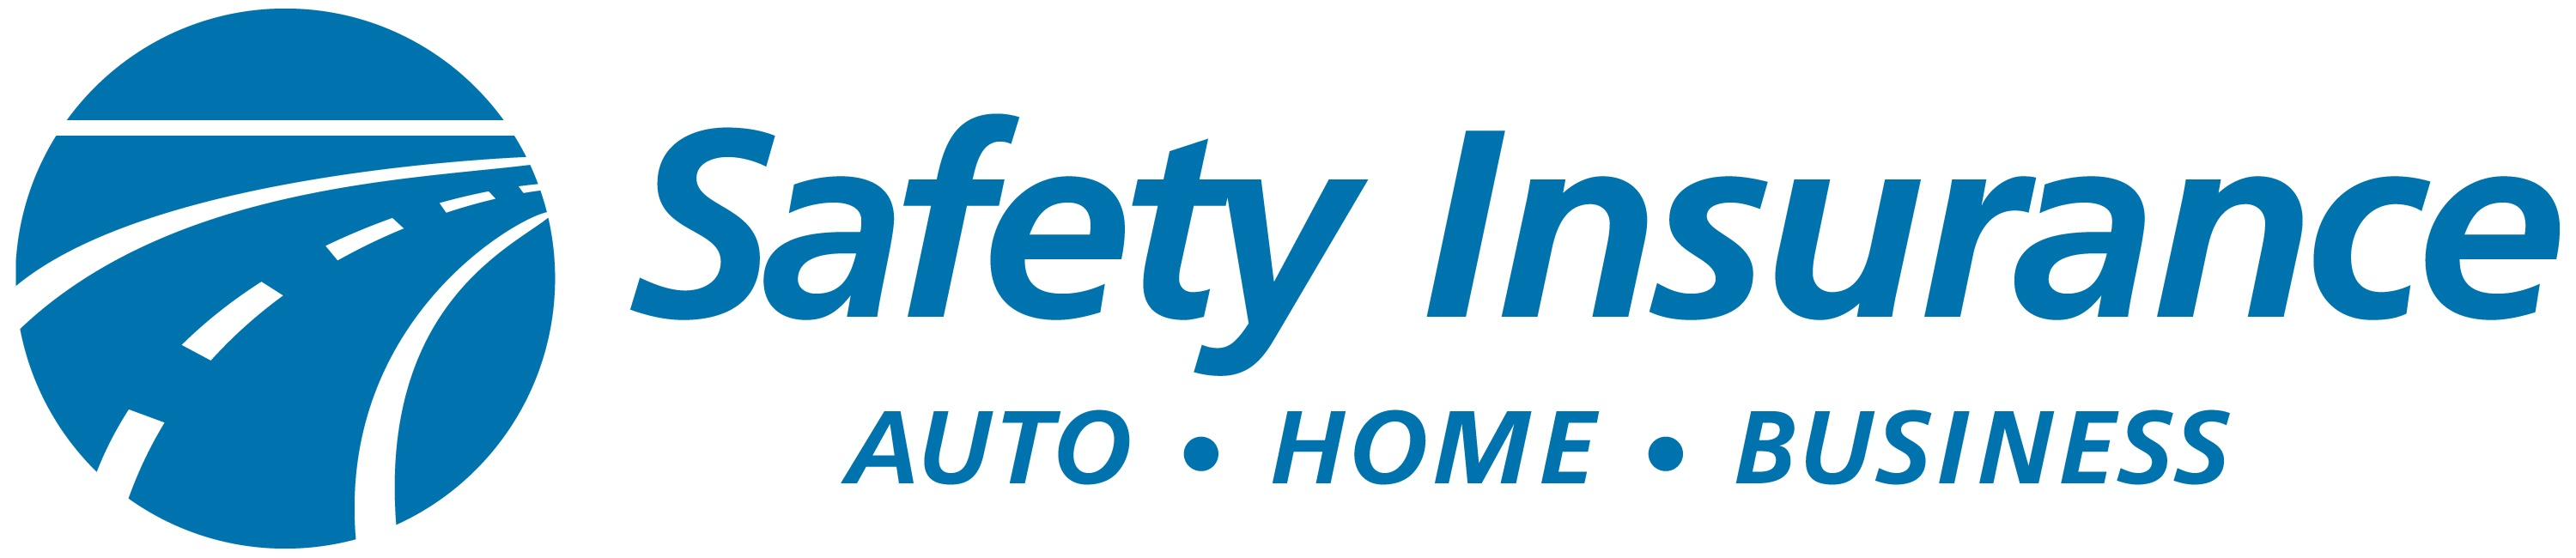 safety_logo.jpg